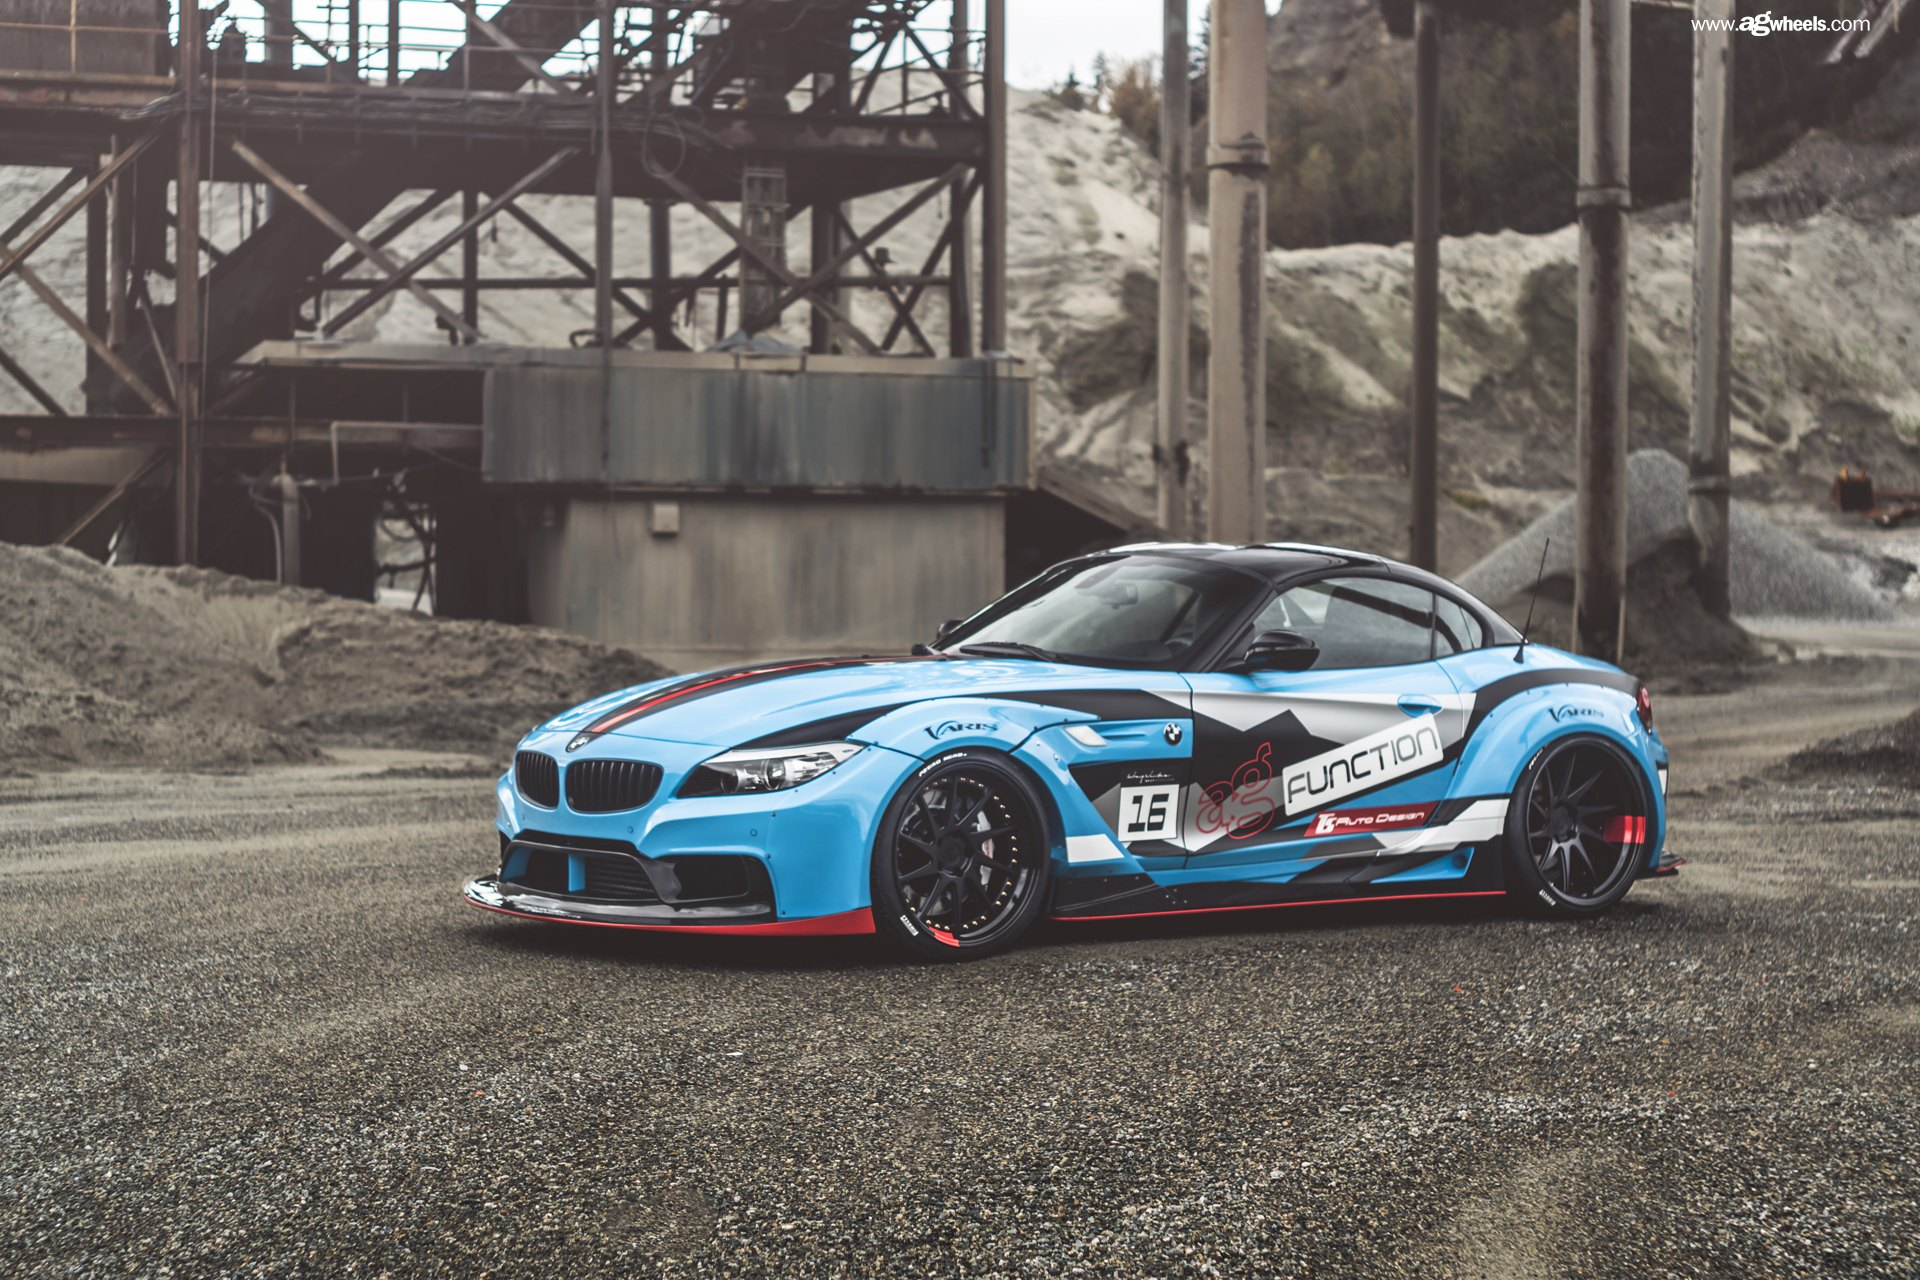 Bmw Repair Shops >> BMW Z4 With a Wide Body Kit and Racing Livery — CARiD.com Gallery